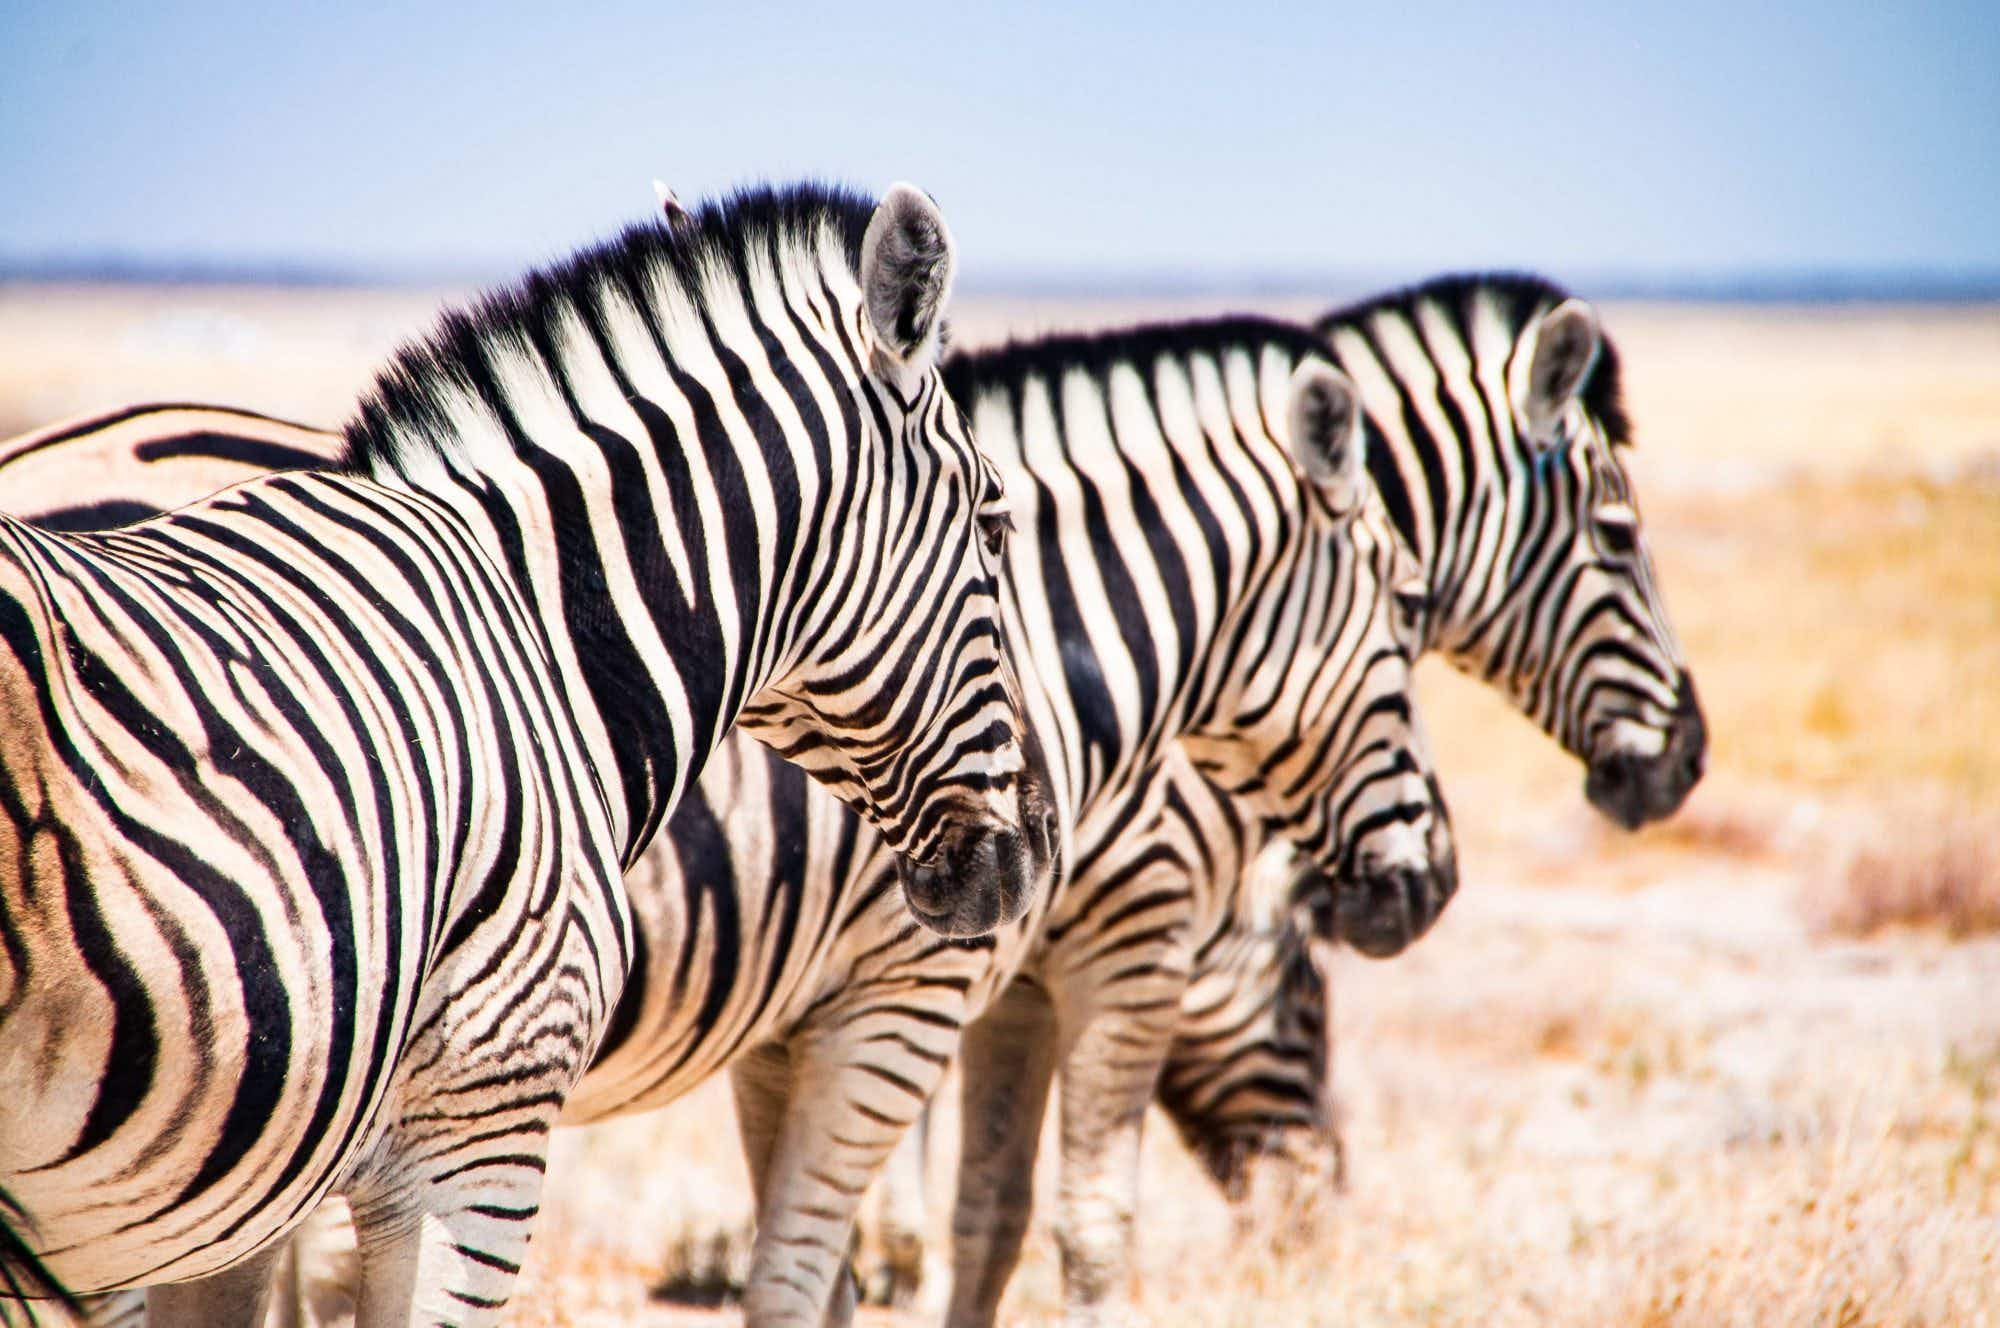 A photographer shares incredible up close photos from Namibia trip